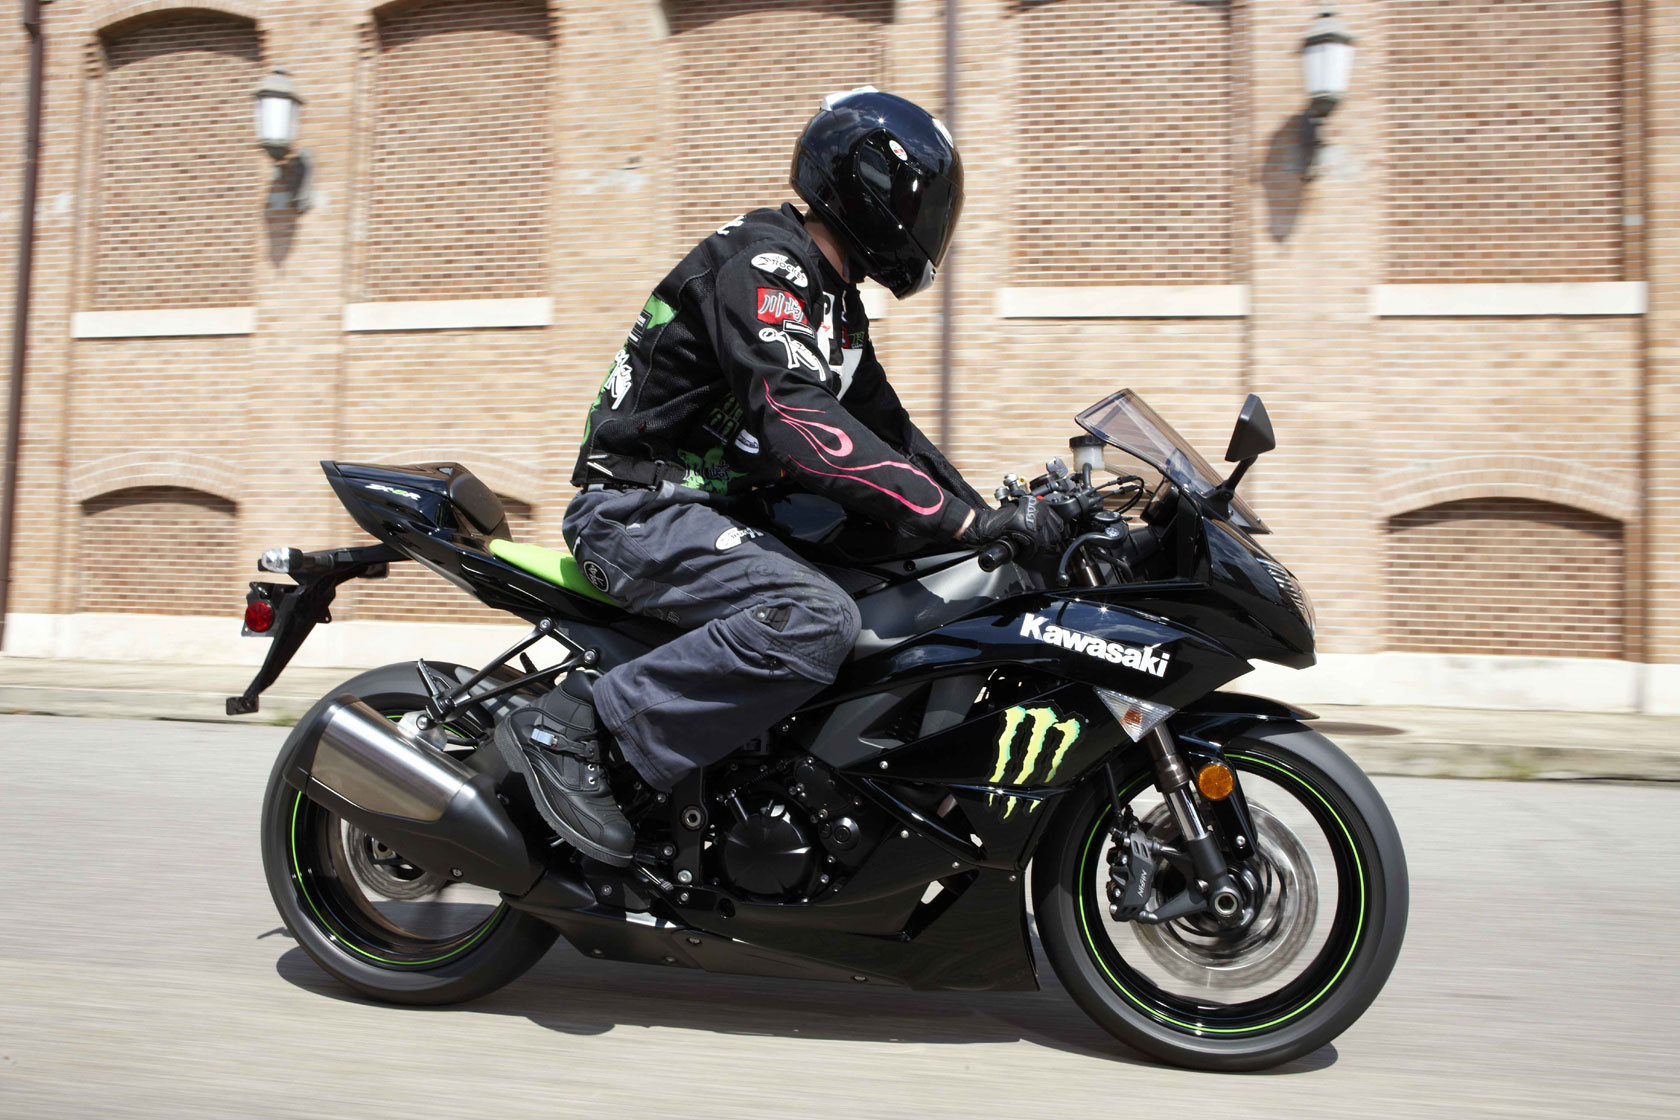 2009 Kawasaki Ninja ZX-6R Monster Touring